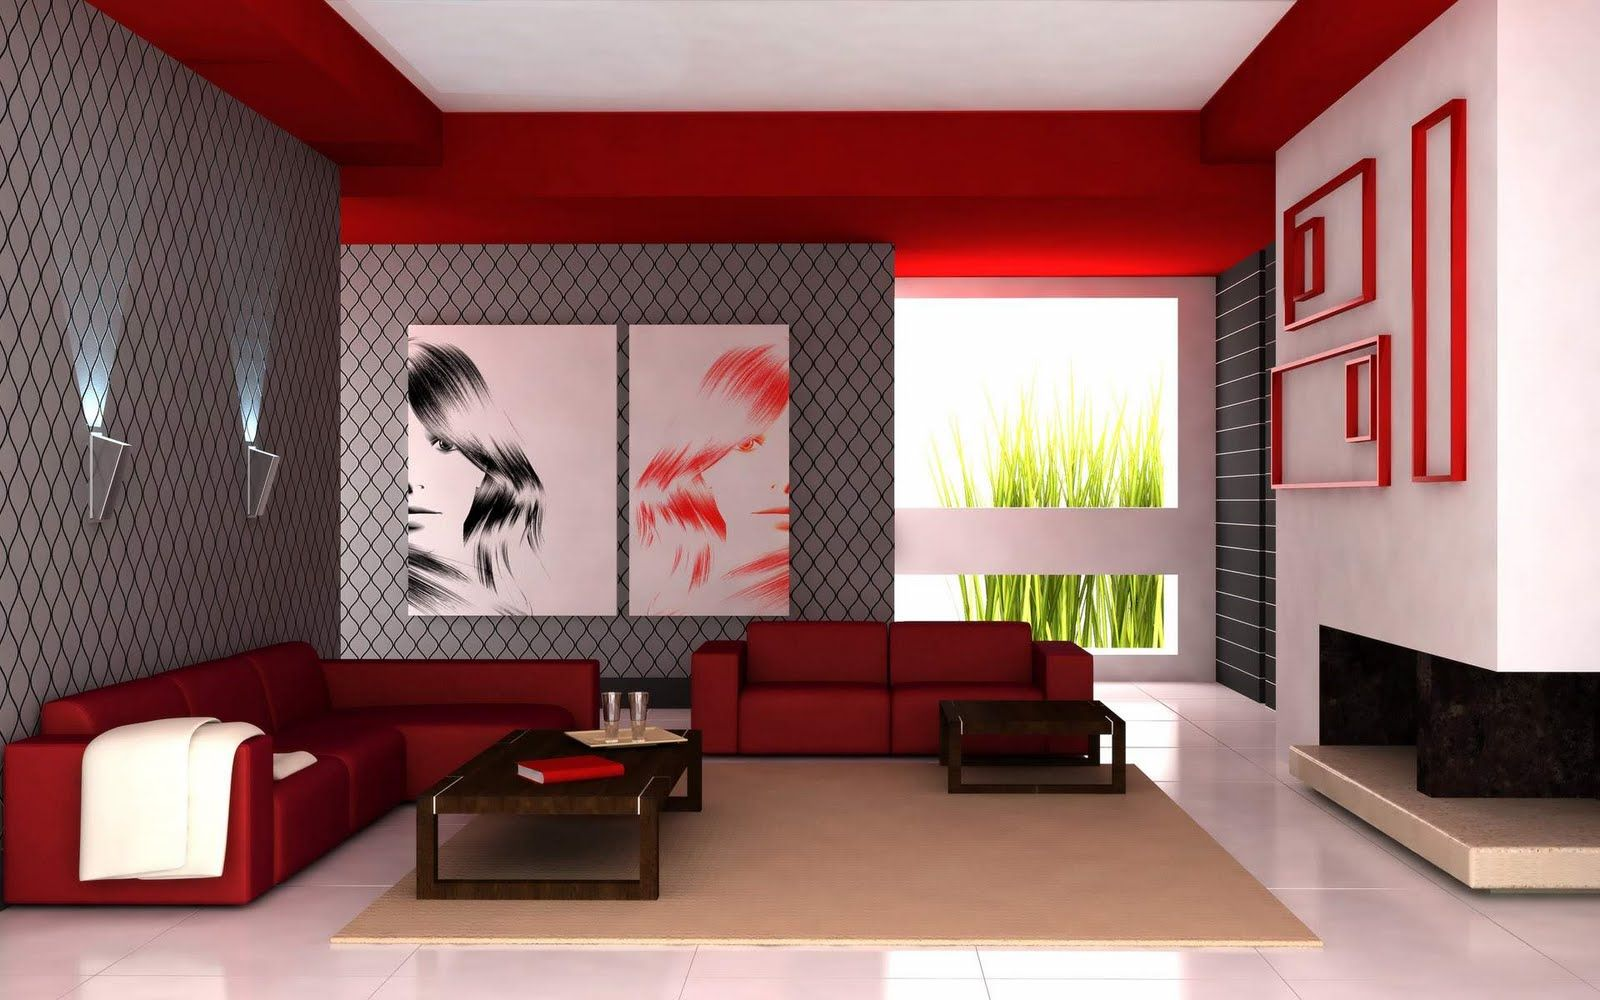 Room Colors Ideas discovering the best living room colors ideas | home decorating